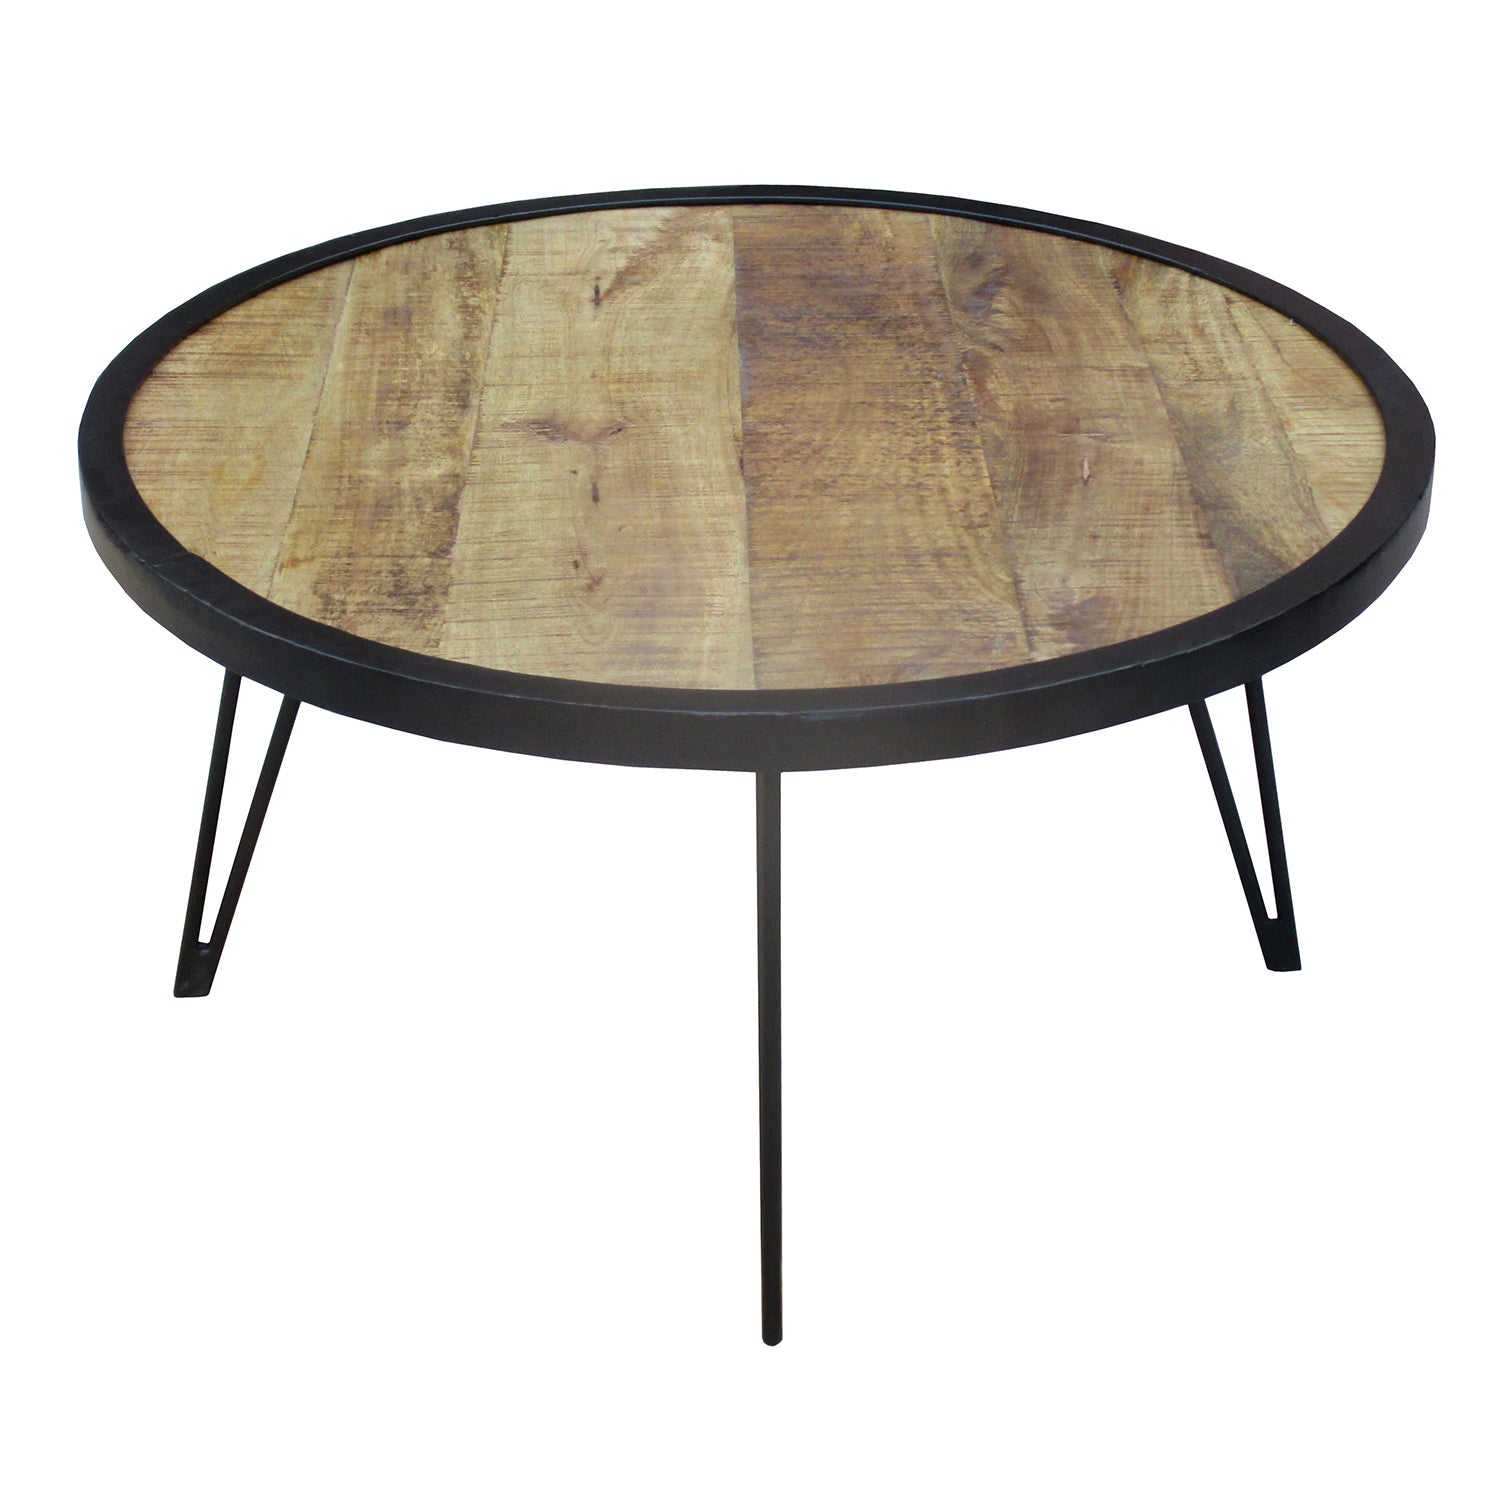 Shop Handmade Wood Round Coffee Table India Free Shipping